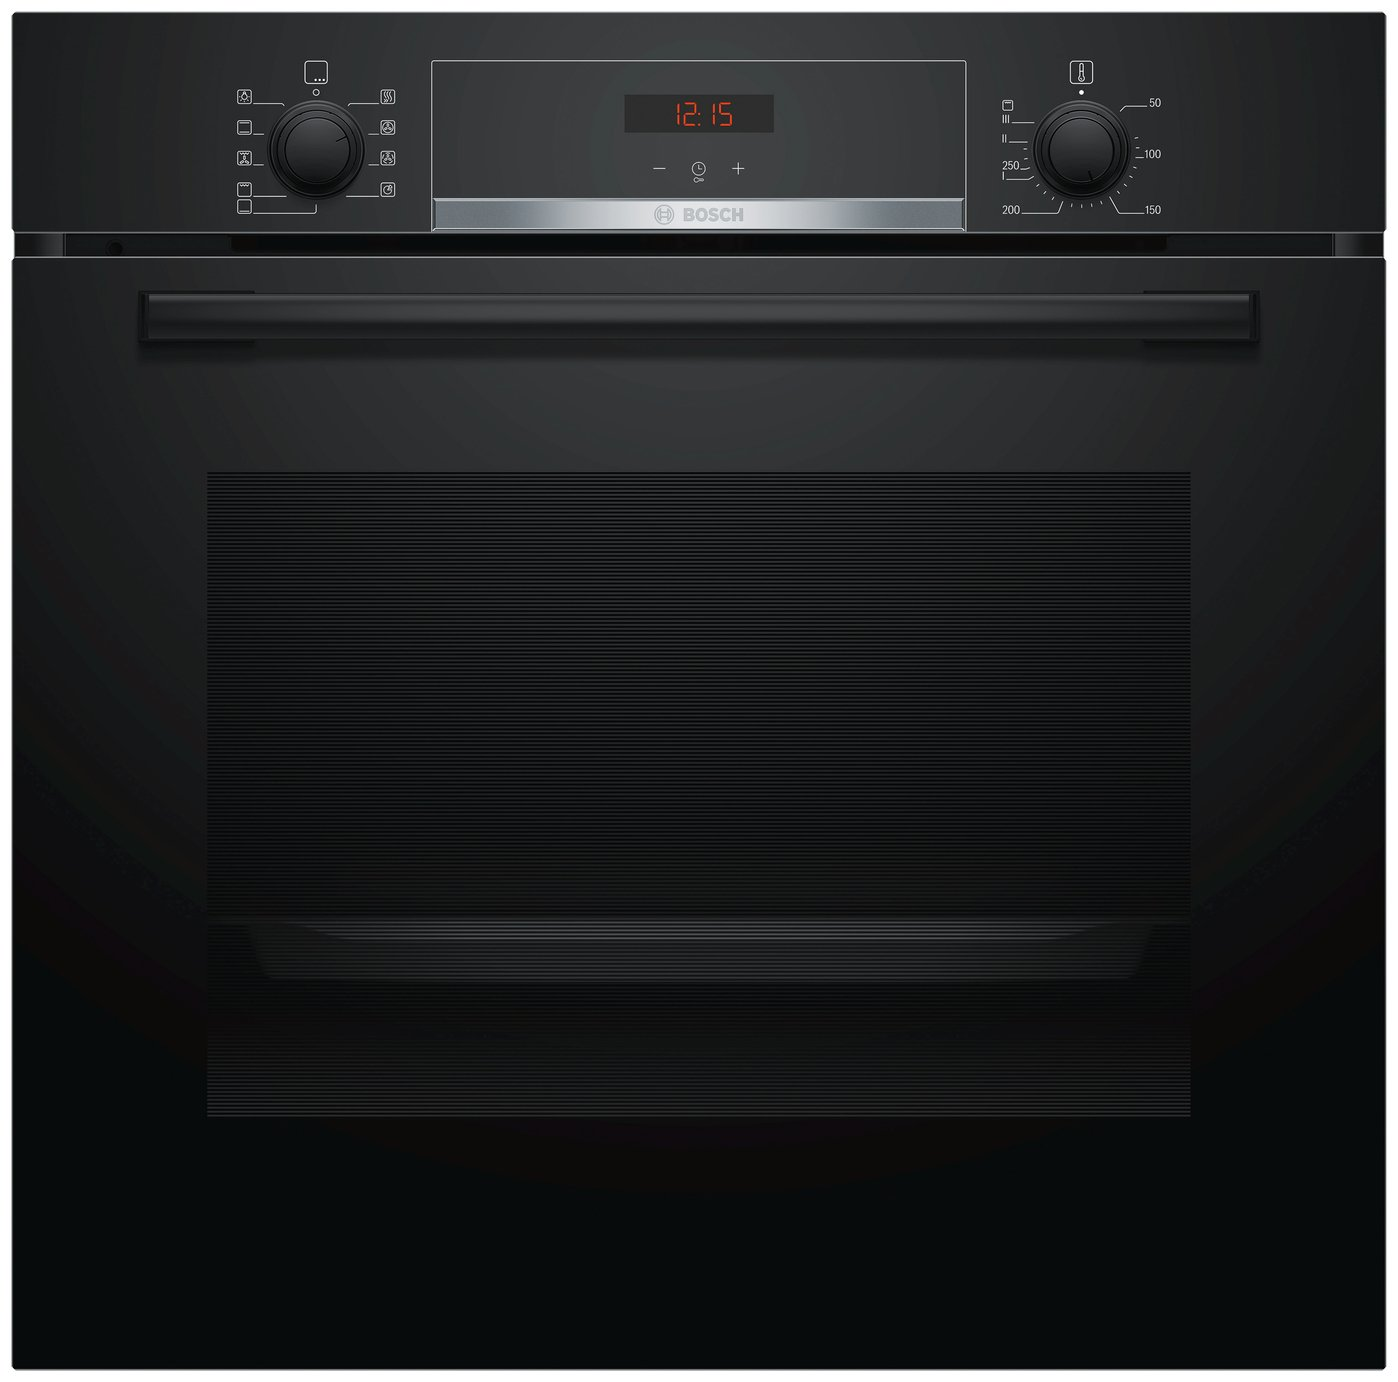 Bosch BS534BB0B 59.4cm Built In Single Electric Oven - Black Best Price, Cheapest Prices